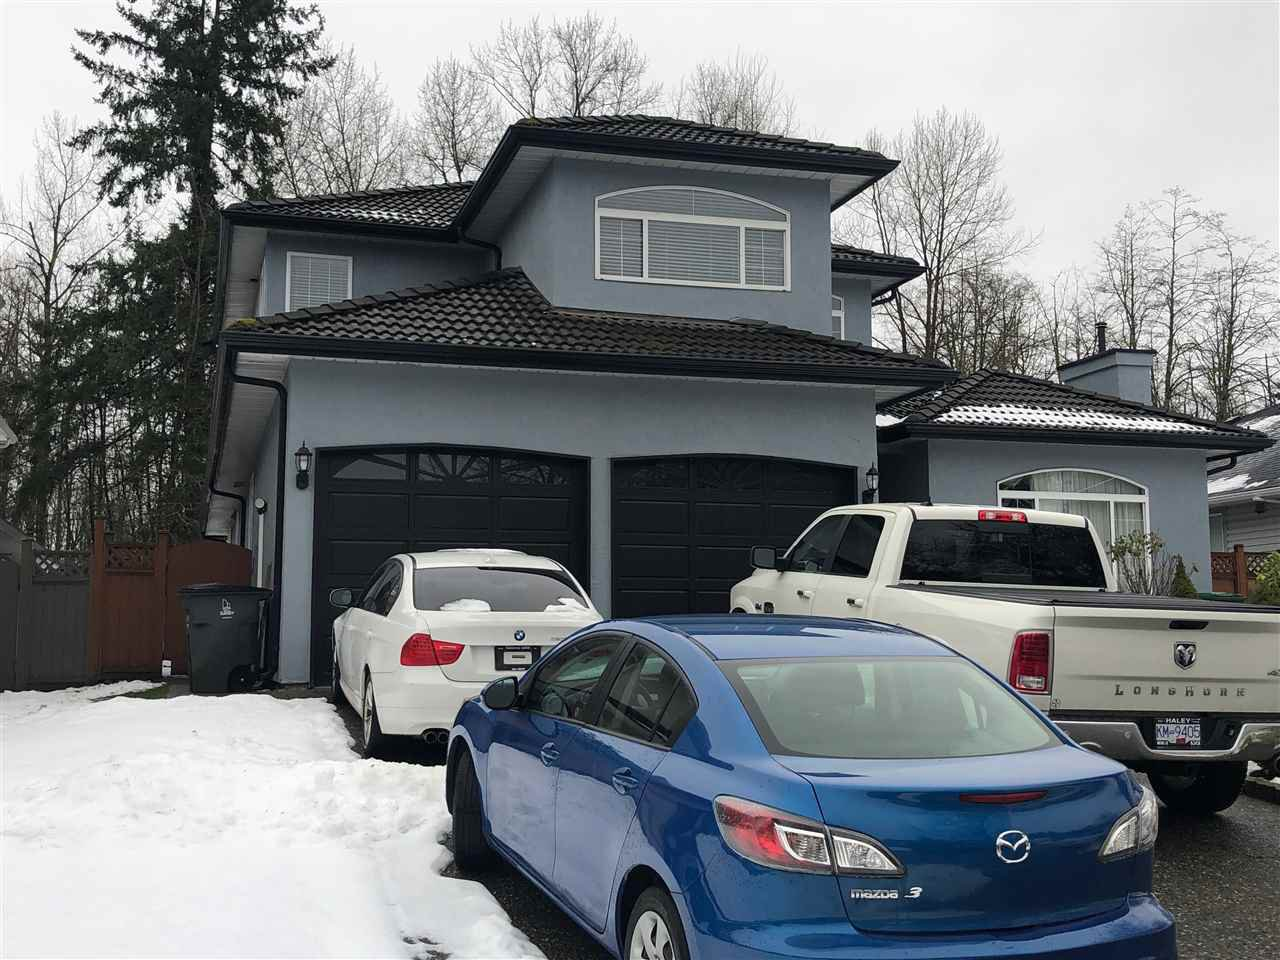 Main Photo: 14378 74A Avenue in Surrey: East Newton House for sale : MLS®# R2429567